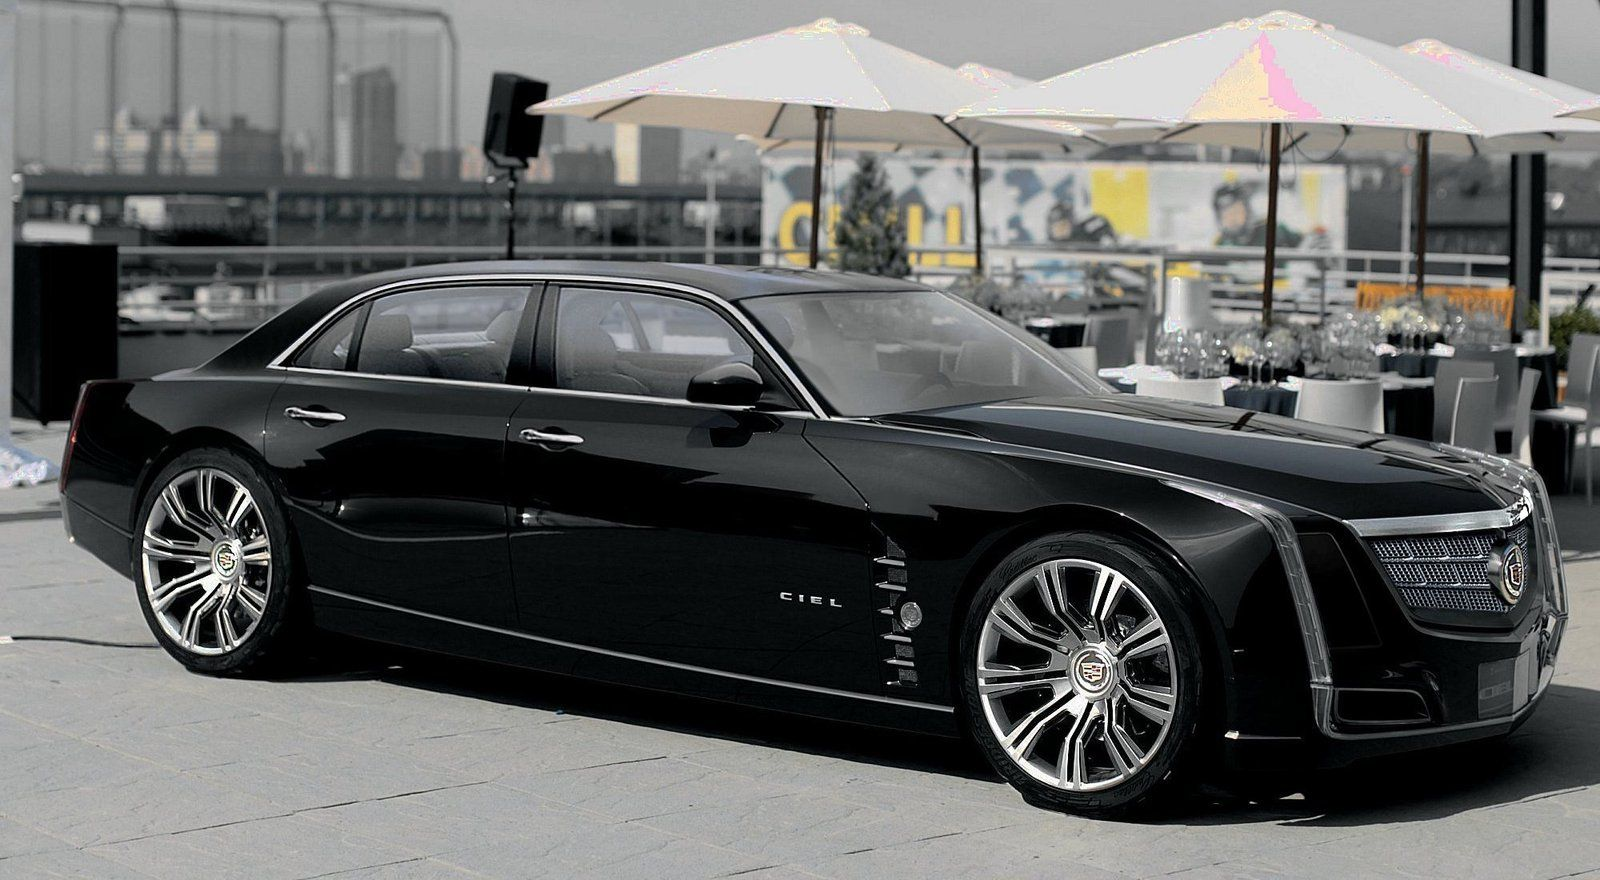 2015 cadillac omega images galleries with a bite. Black Bedroom Furniture Sets. Home Design Ideas